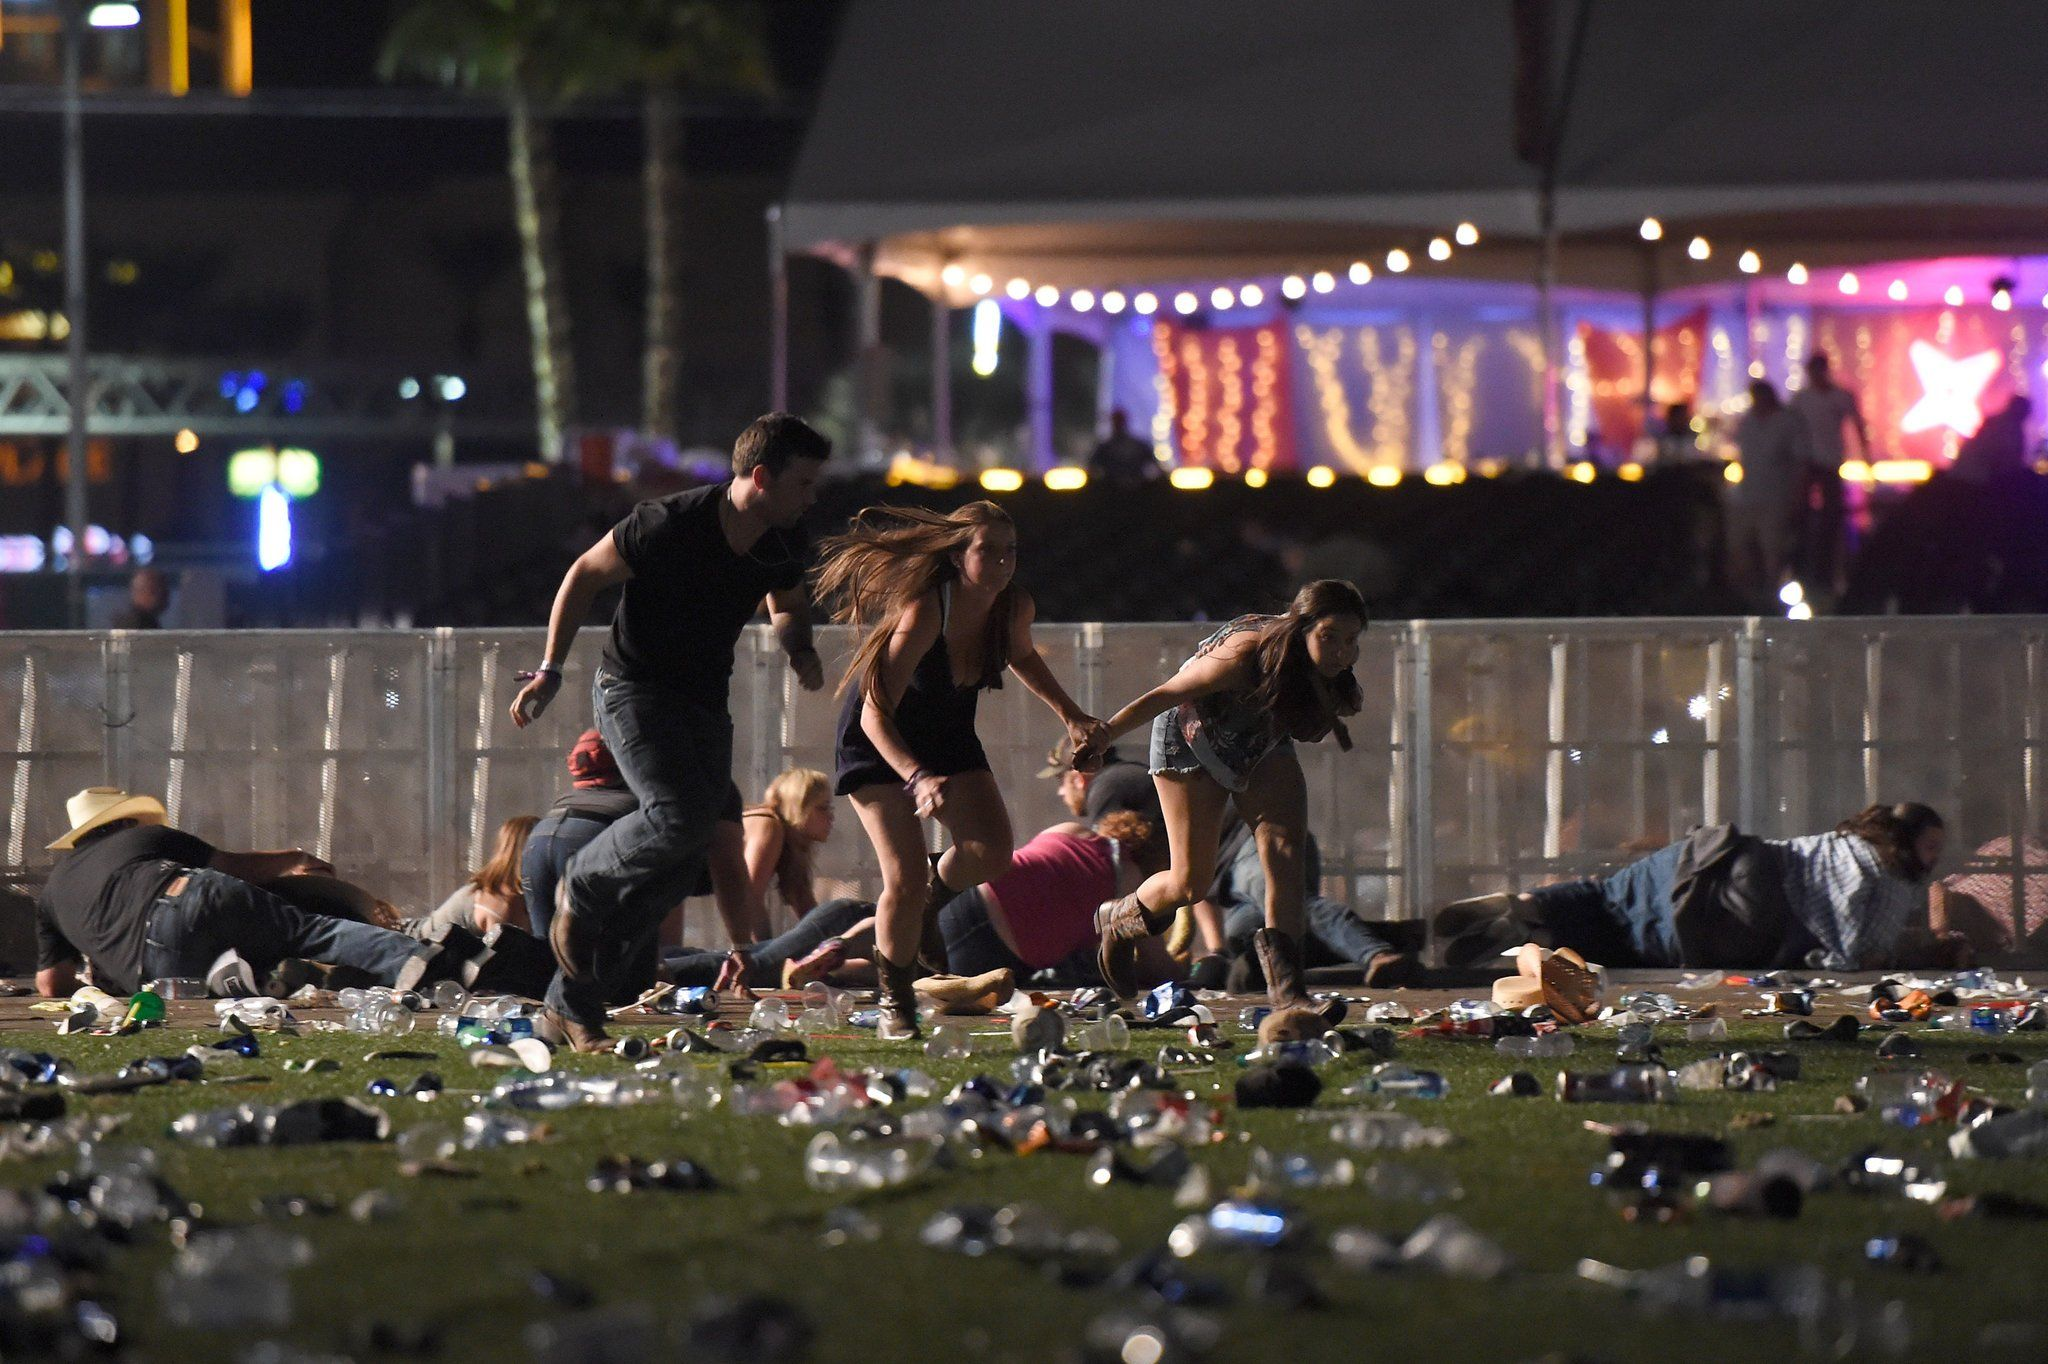 Las Vegas Shooting Near Mandalay Bay Is Said To Kill At Least 2